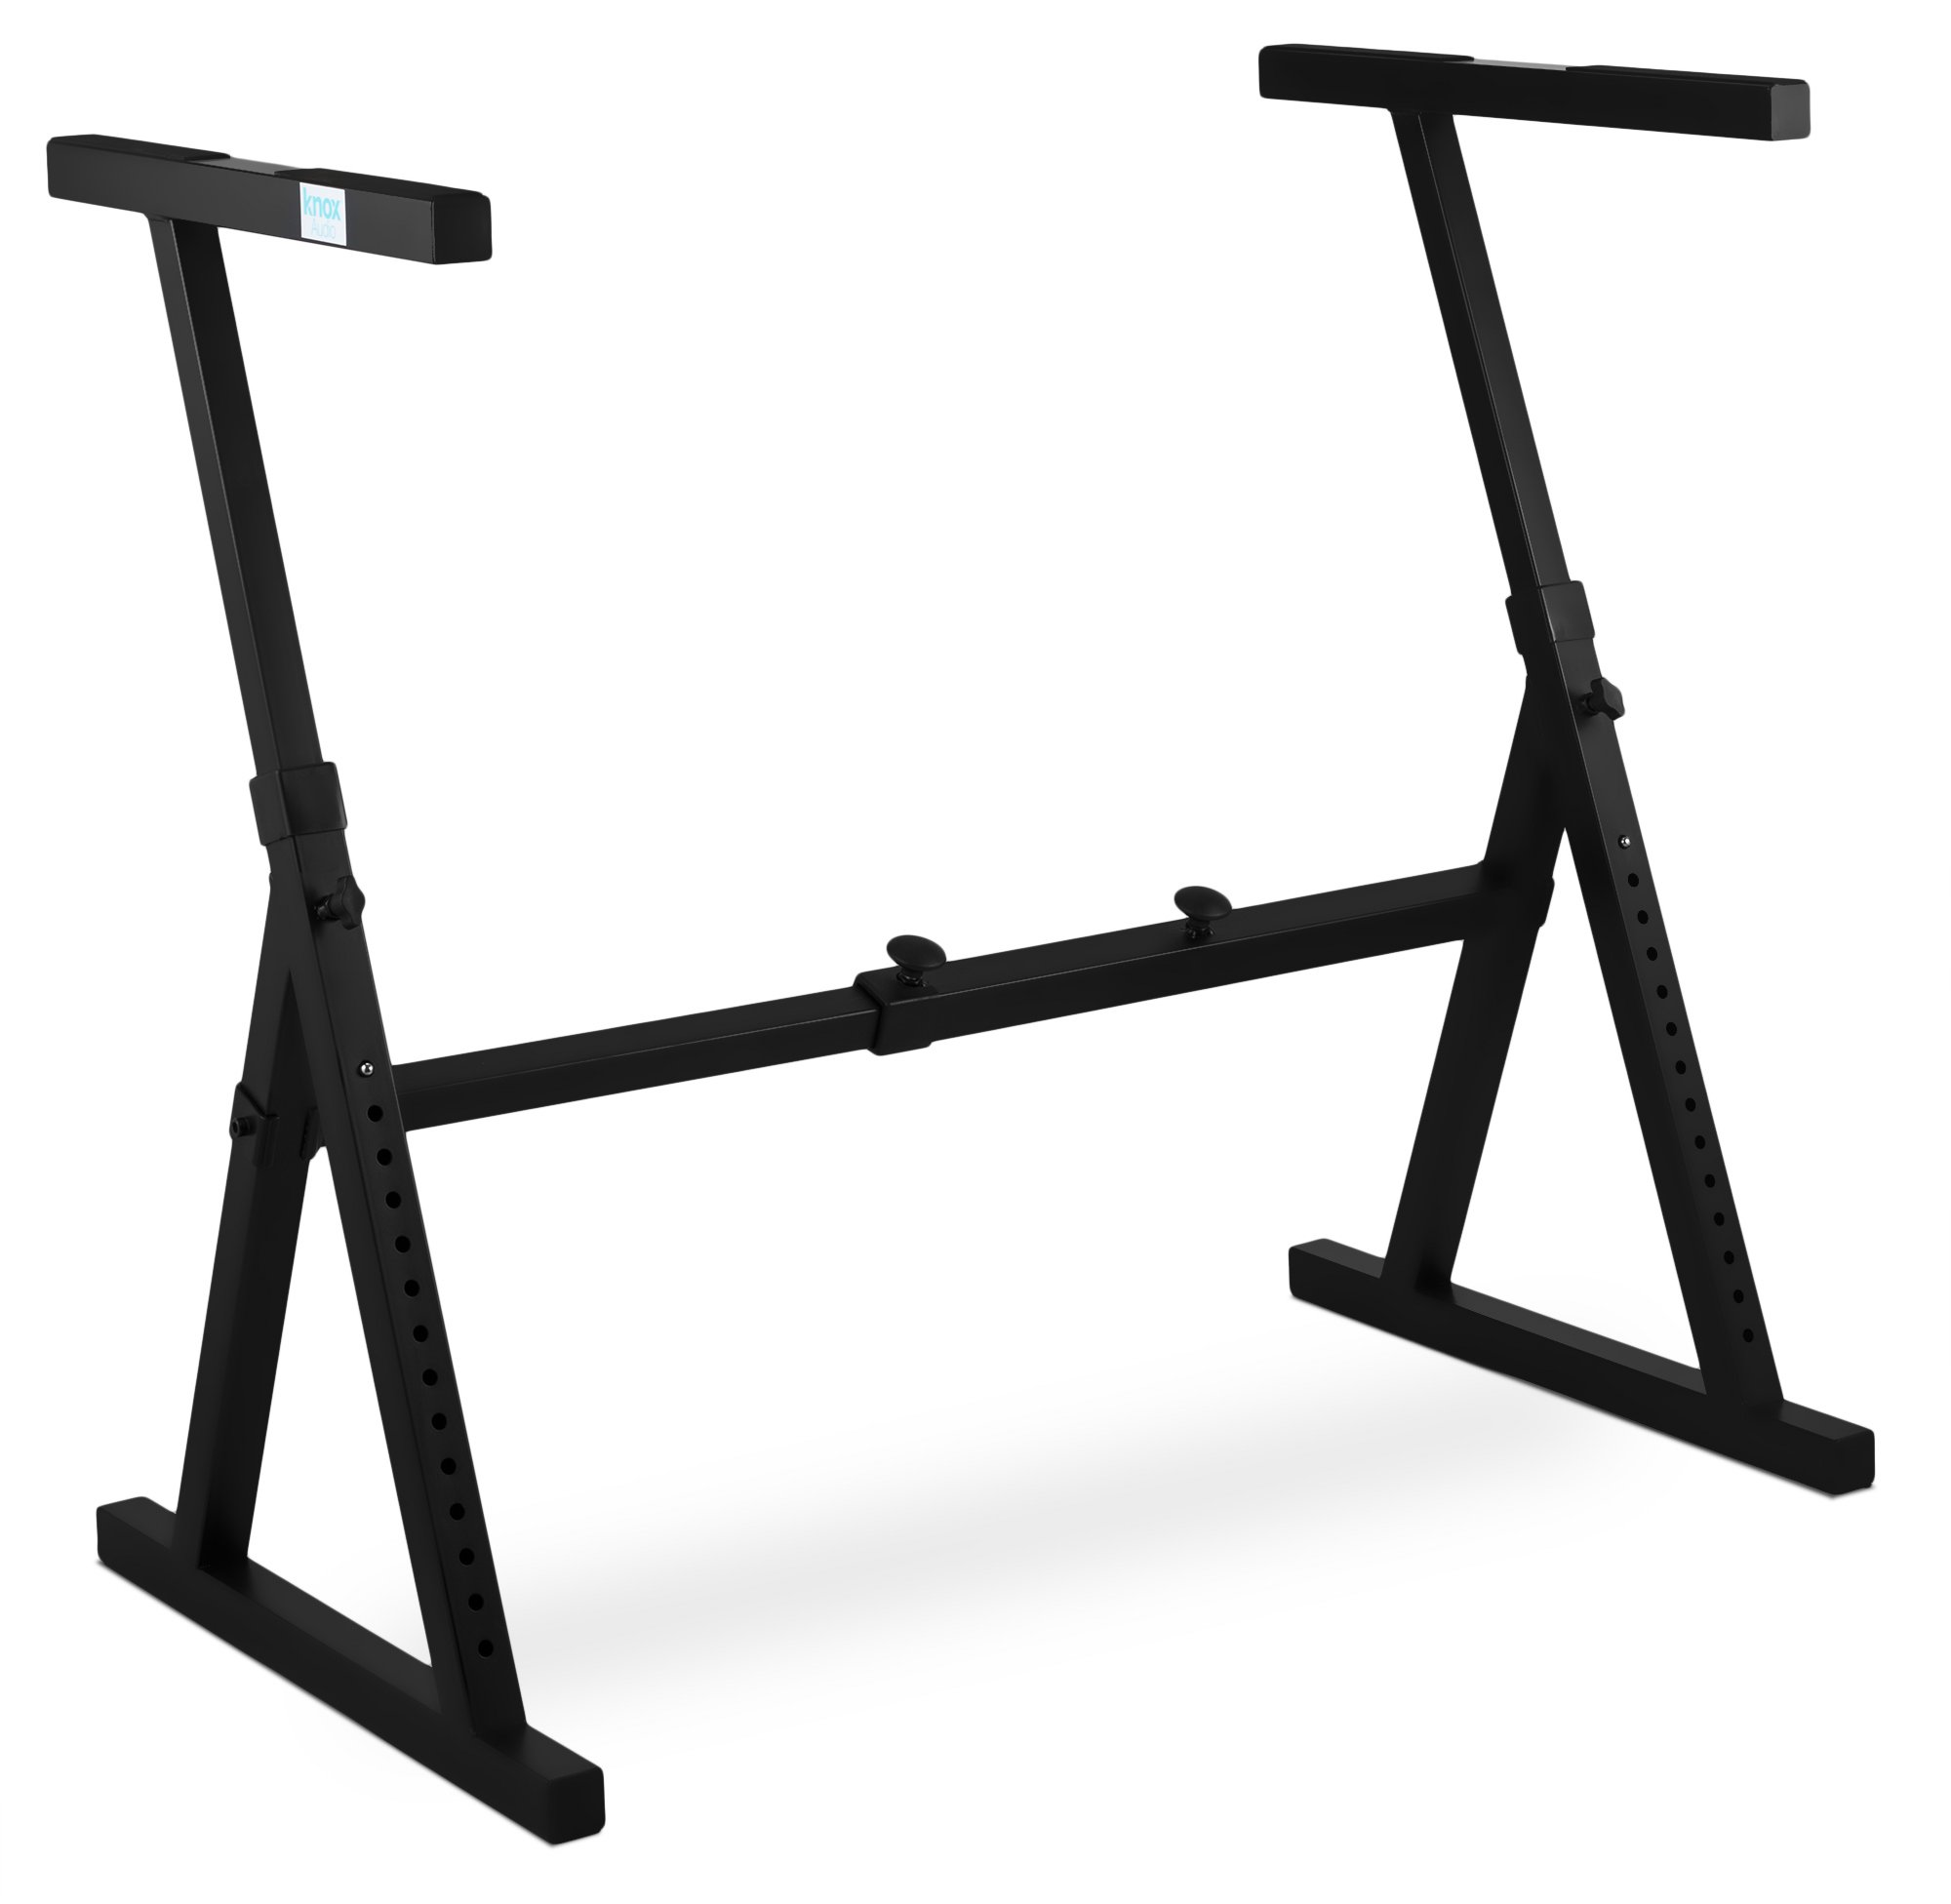 Knox Gear Z Style Heavy Duty Adjustable Piano Keyboard Stand by Knox (Image #3)